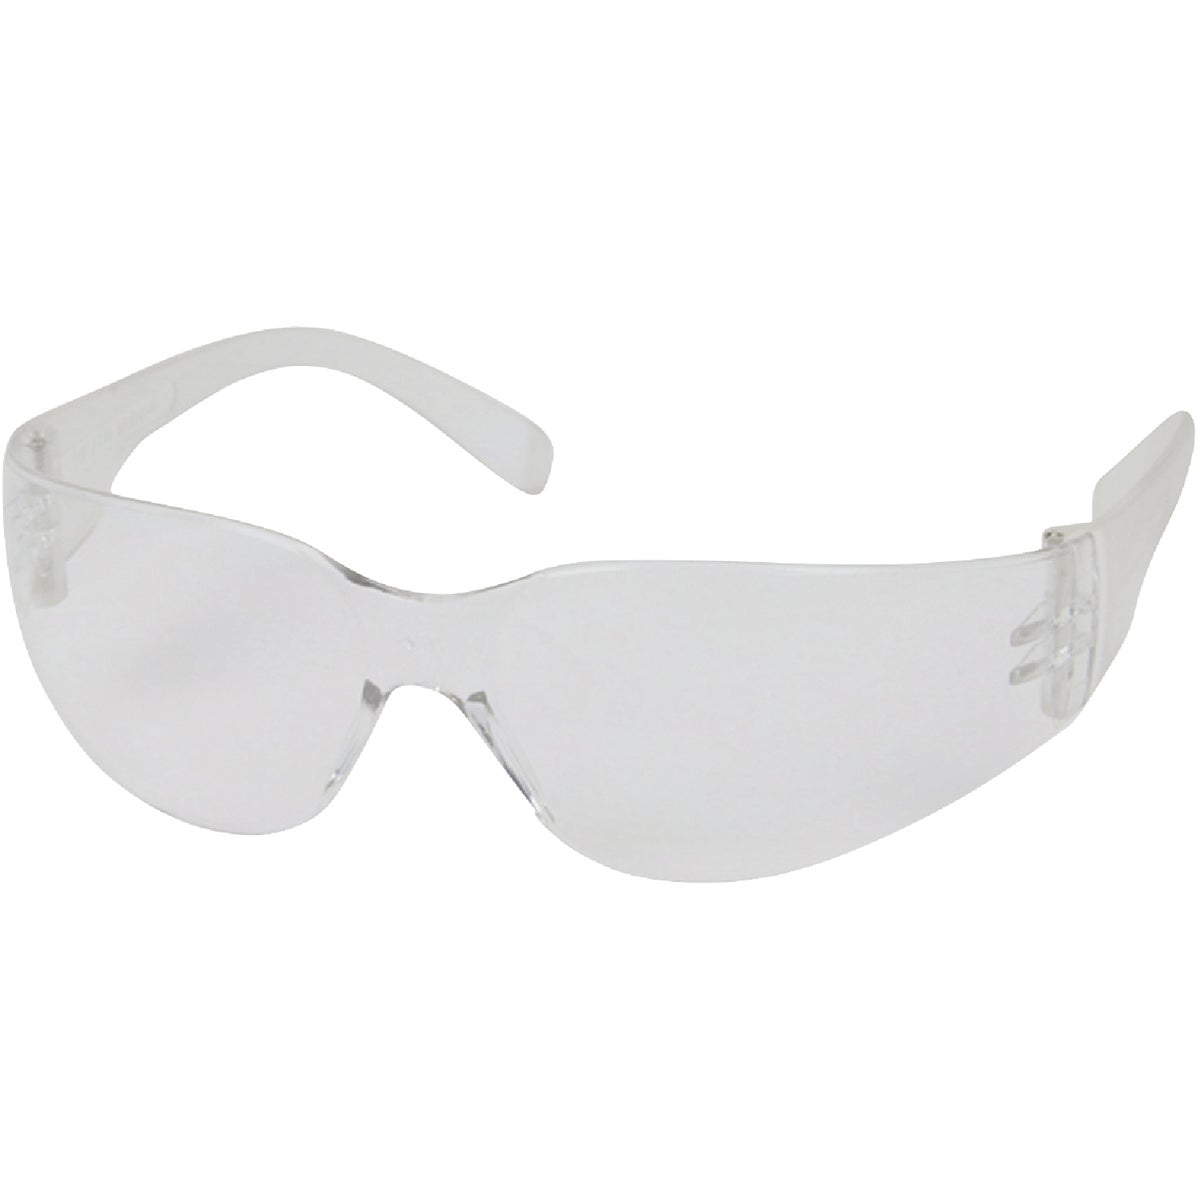 CLEAR SAFETY GLASSES - 10006315 by Msa Safety